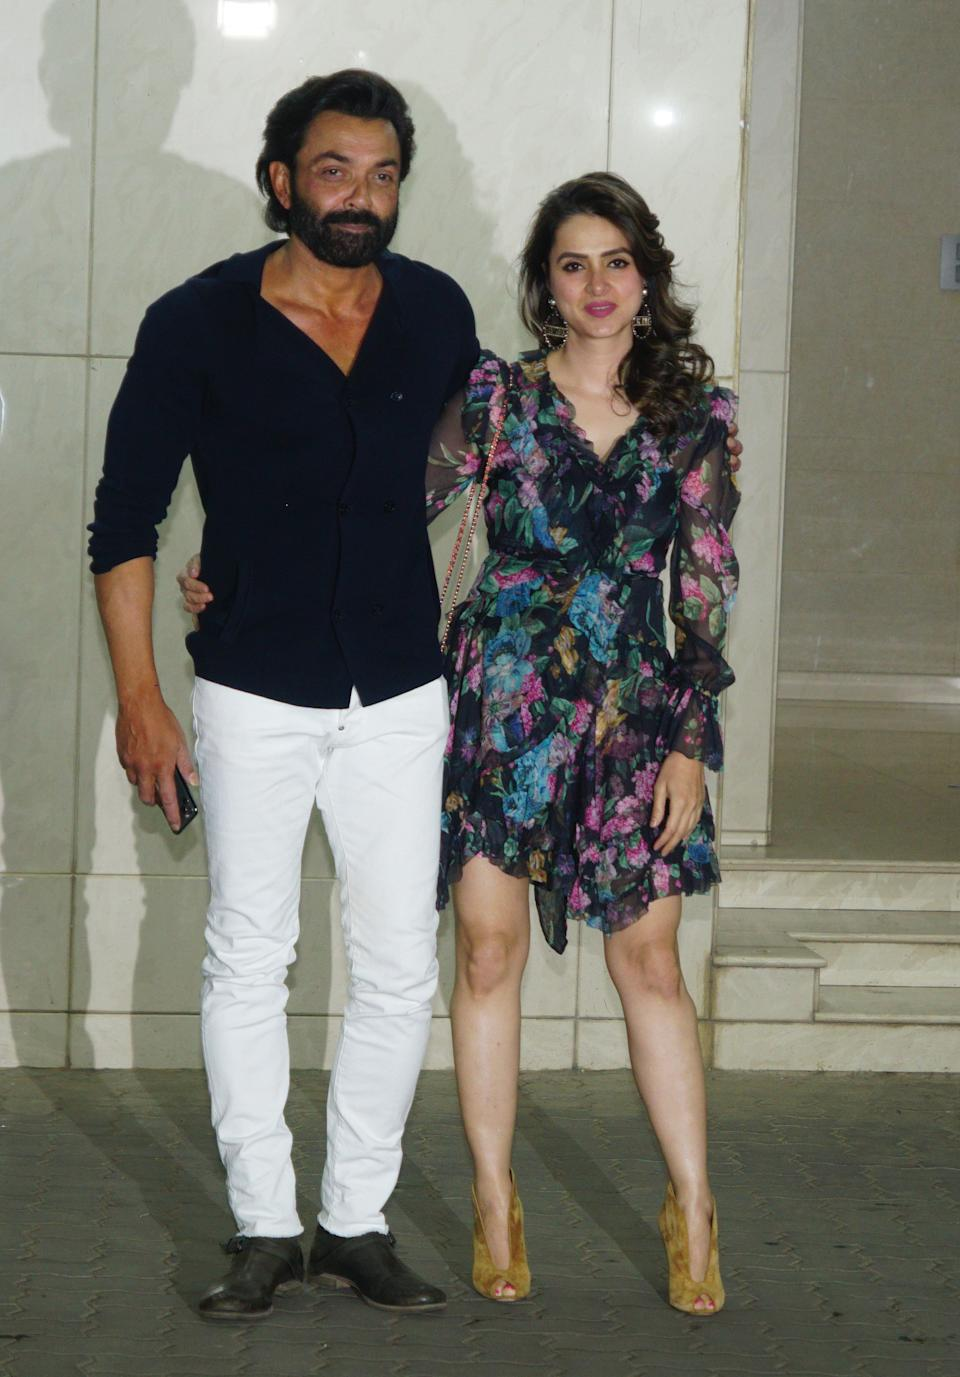 MUMBAI, INDIA - DECEMBER 26:  Bobby Deol and Tanya Deol attend the Salman Khan's  birthday celebration on December 26,2019 in Mumbai, India (Photo by Prodip Guha/Getty Images)